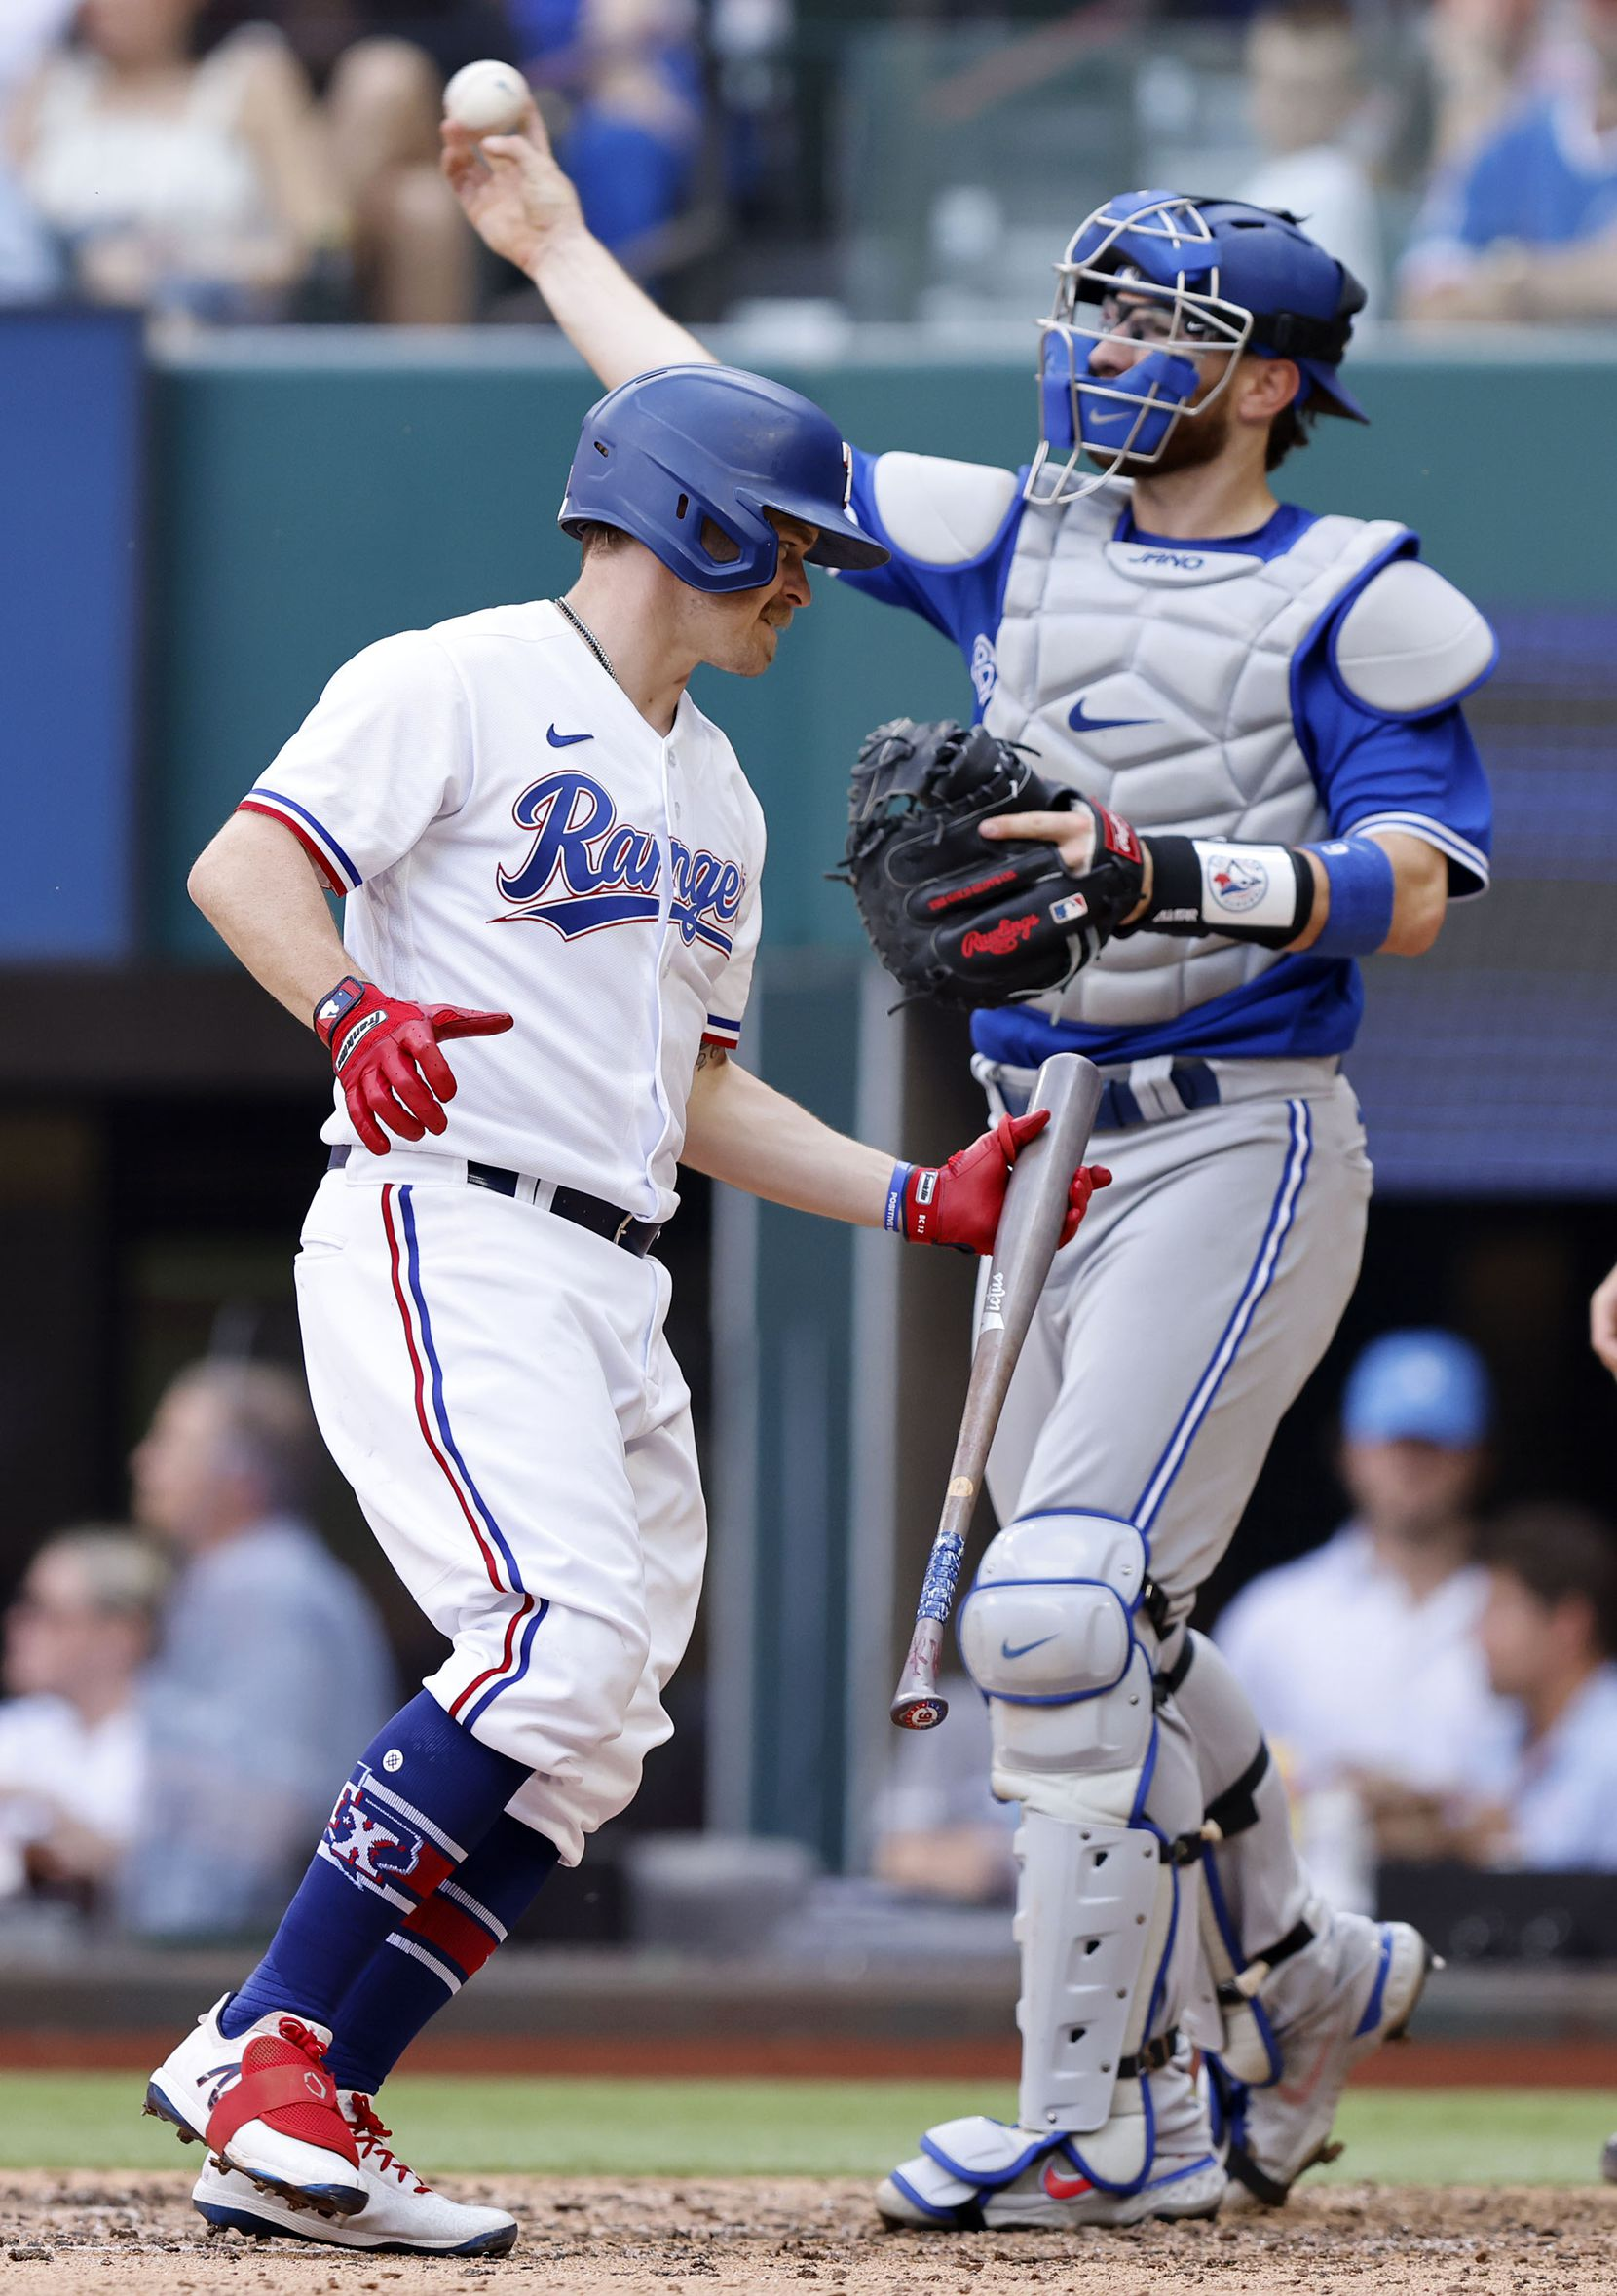 Texas Rangers second baseman Brock Holt (16) strikes out during fifth inning against the Toronto Blue Jays at Globe Life Field in Arlington, Monday, April 5, 2021. The Texas Rangers were facing the Toronto Blue Jays in their home opener. (Tom Fox/The Dallas Morning News)